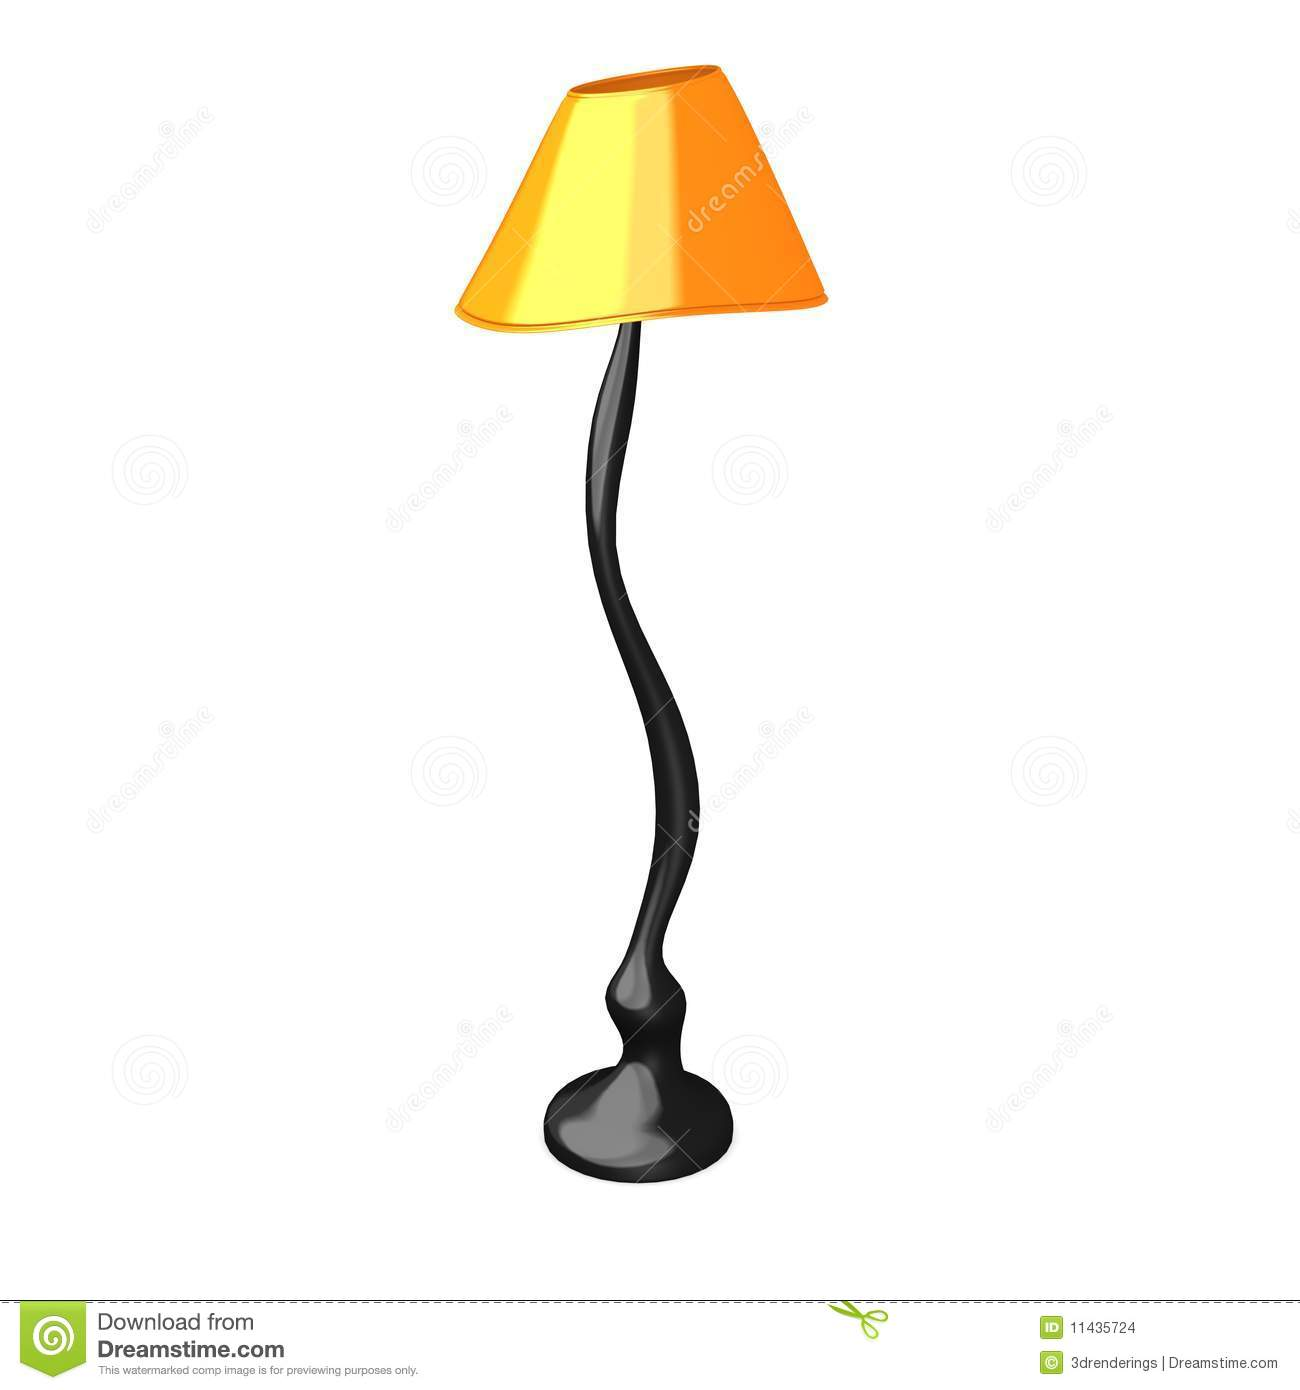 Cartoon Lamp Stock Images - Image: 11435724